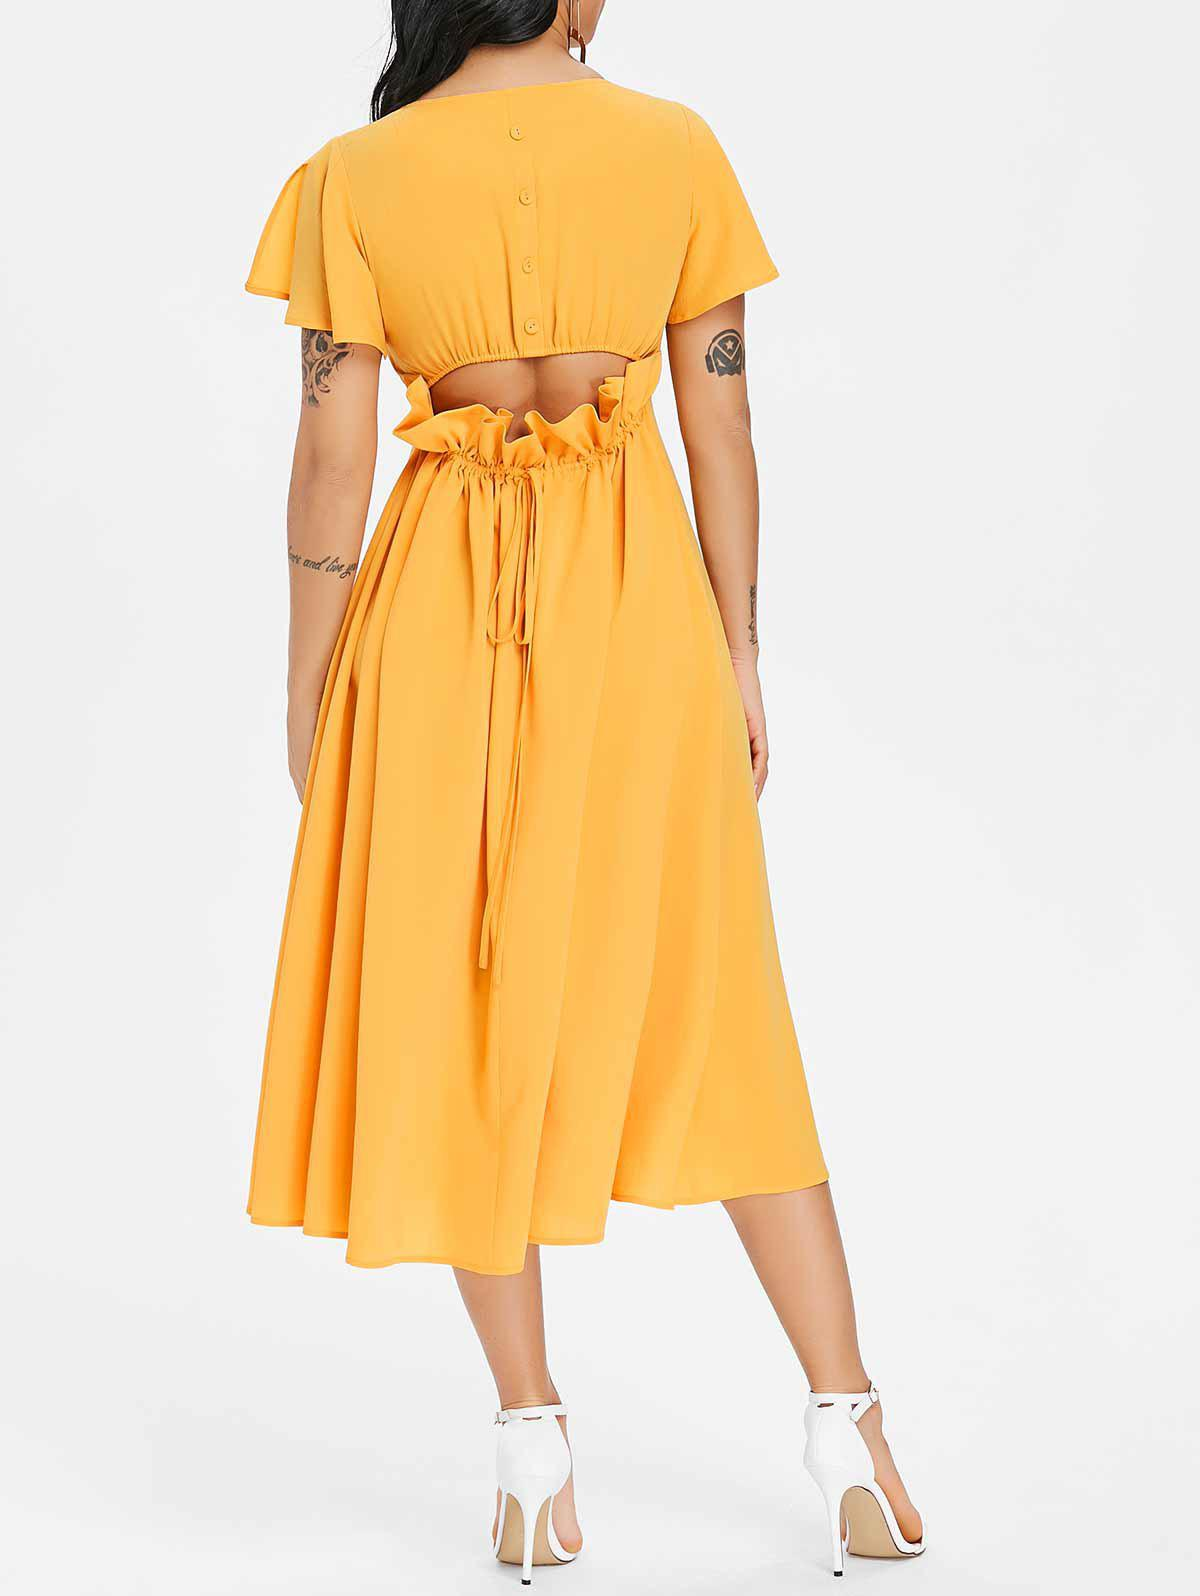 Store Button Drawstring Cut Out Chiffon Midi Dress